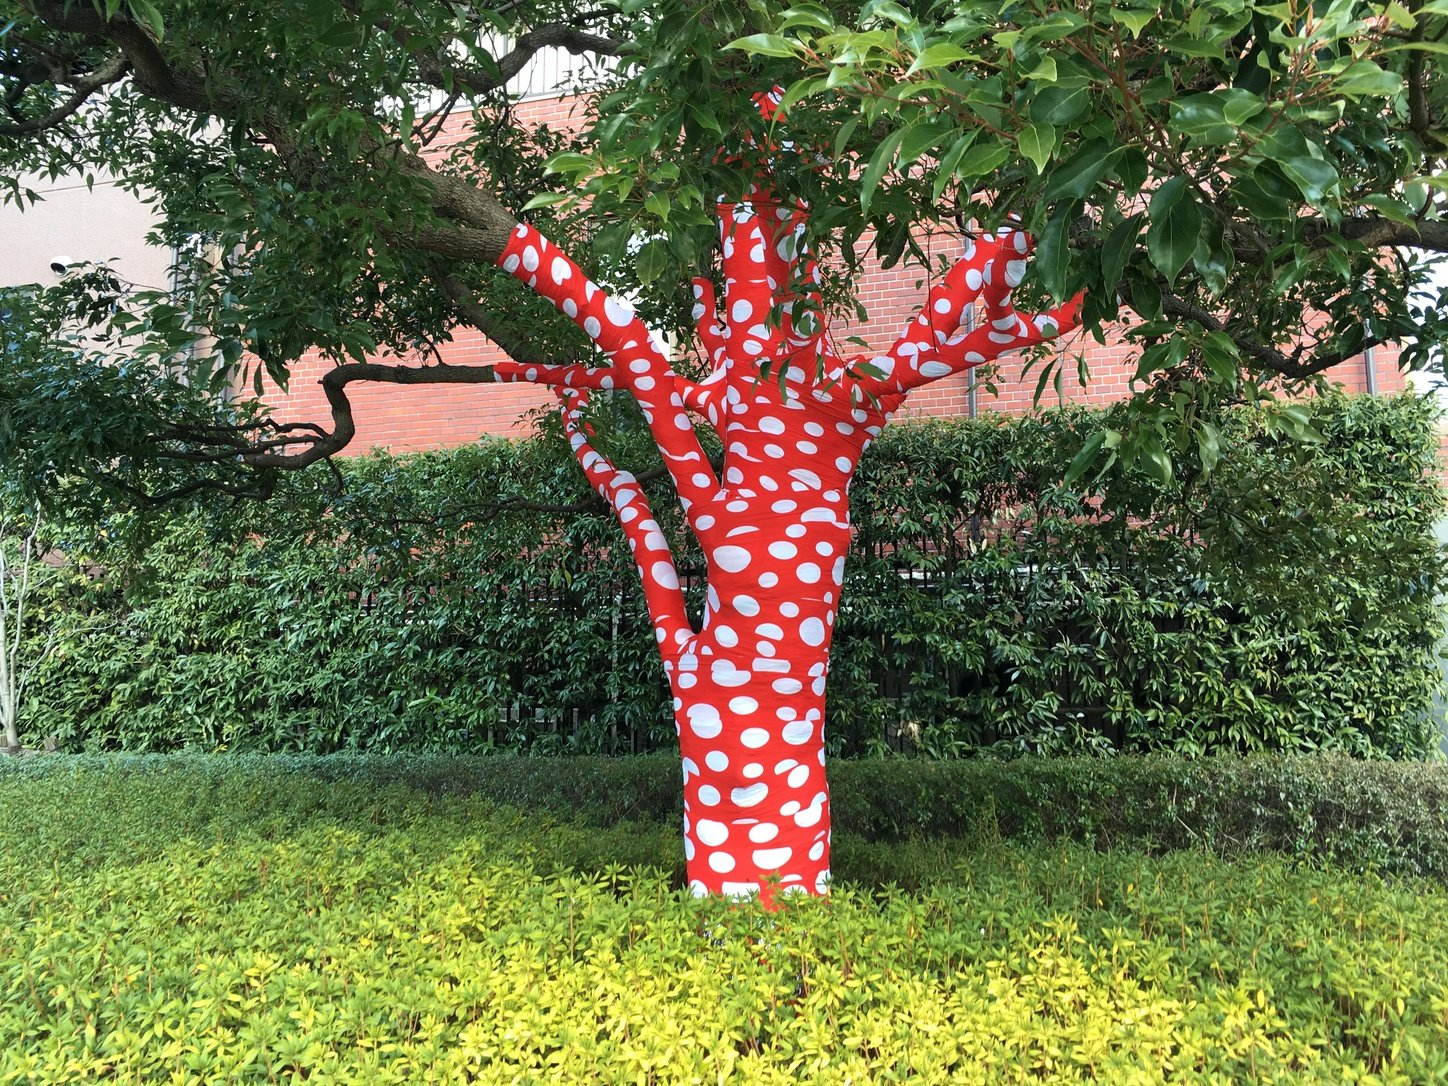 At the entrance to the National Art Center in Roppongi, even the trees have been Yayoi Kusama-fied